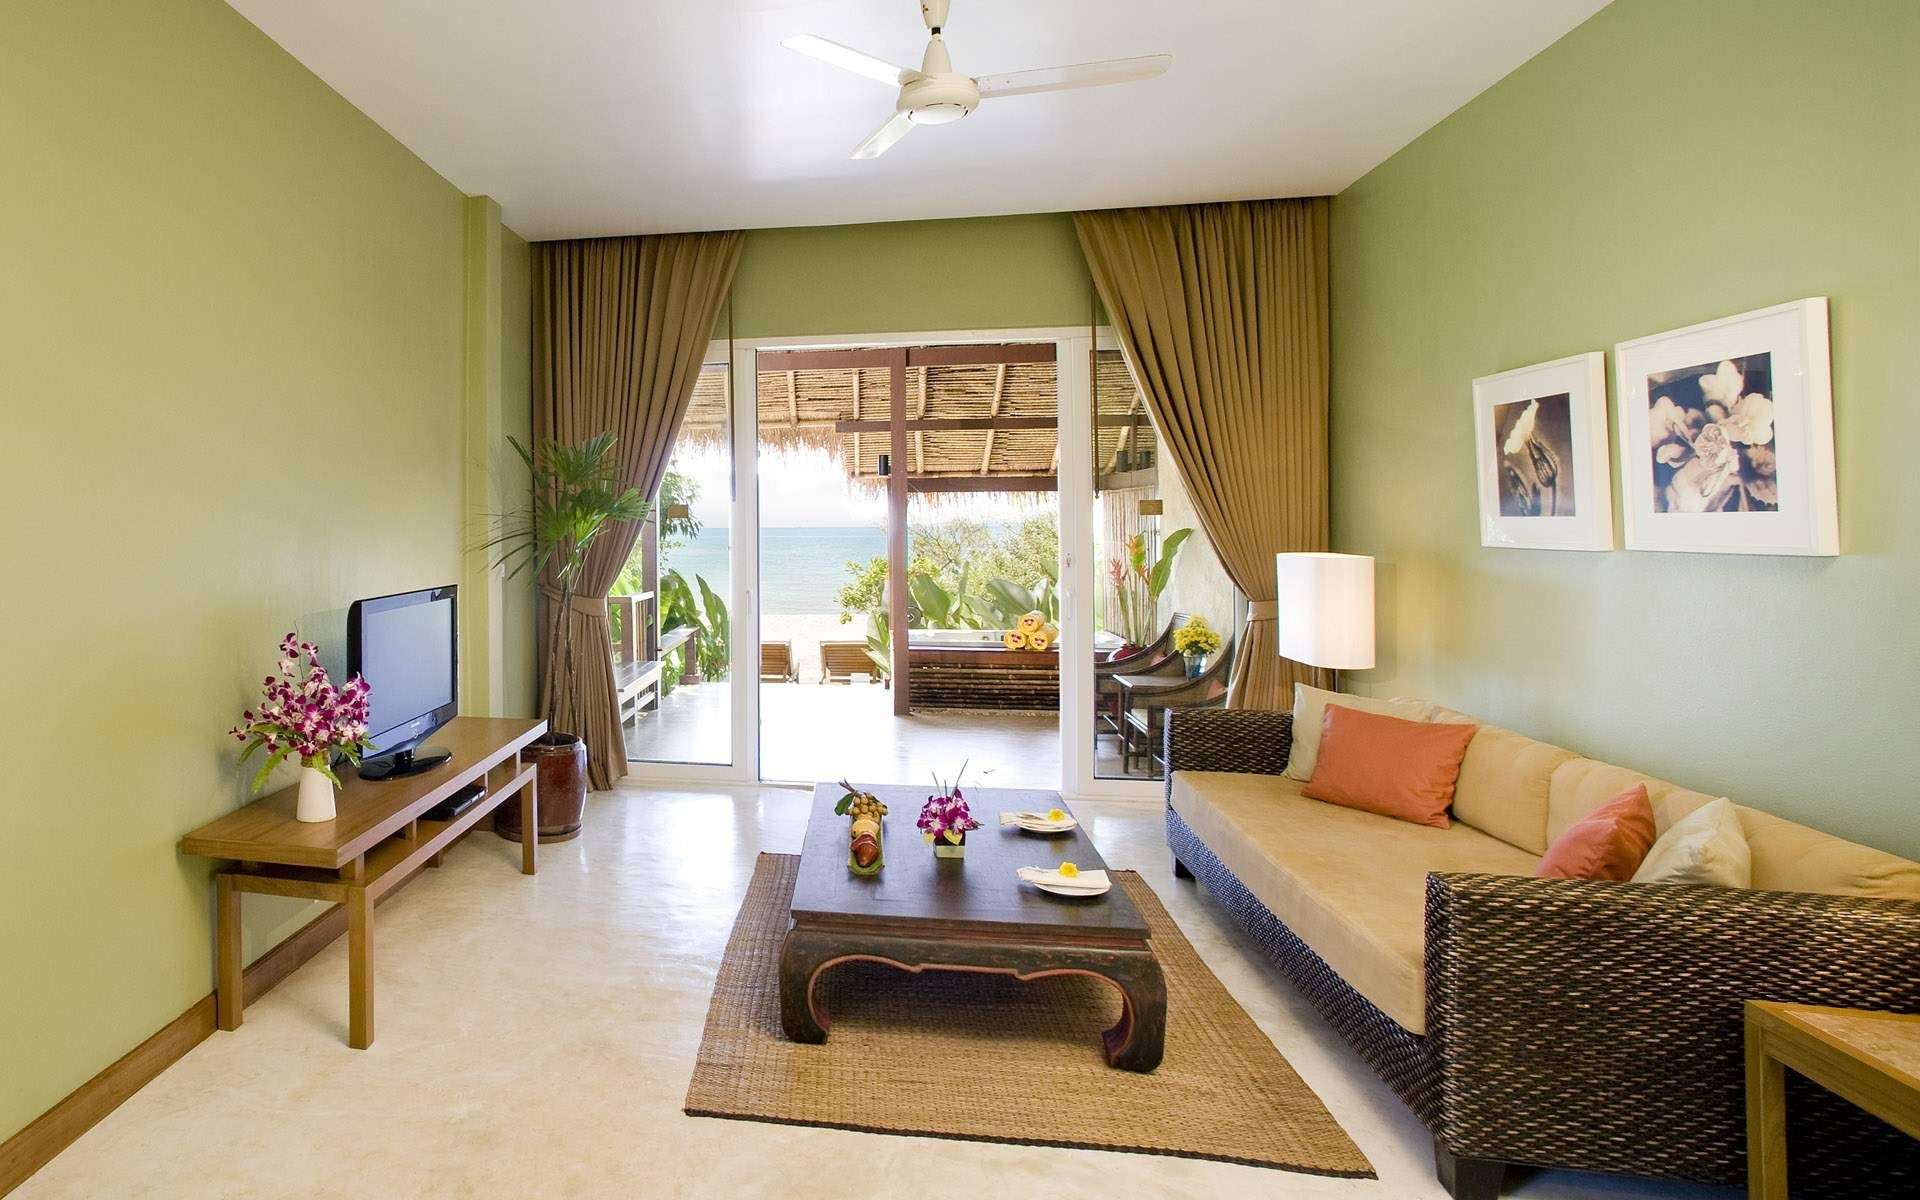 Lovely Living Room Interior Nuance With Calm Green Wall Paint